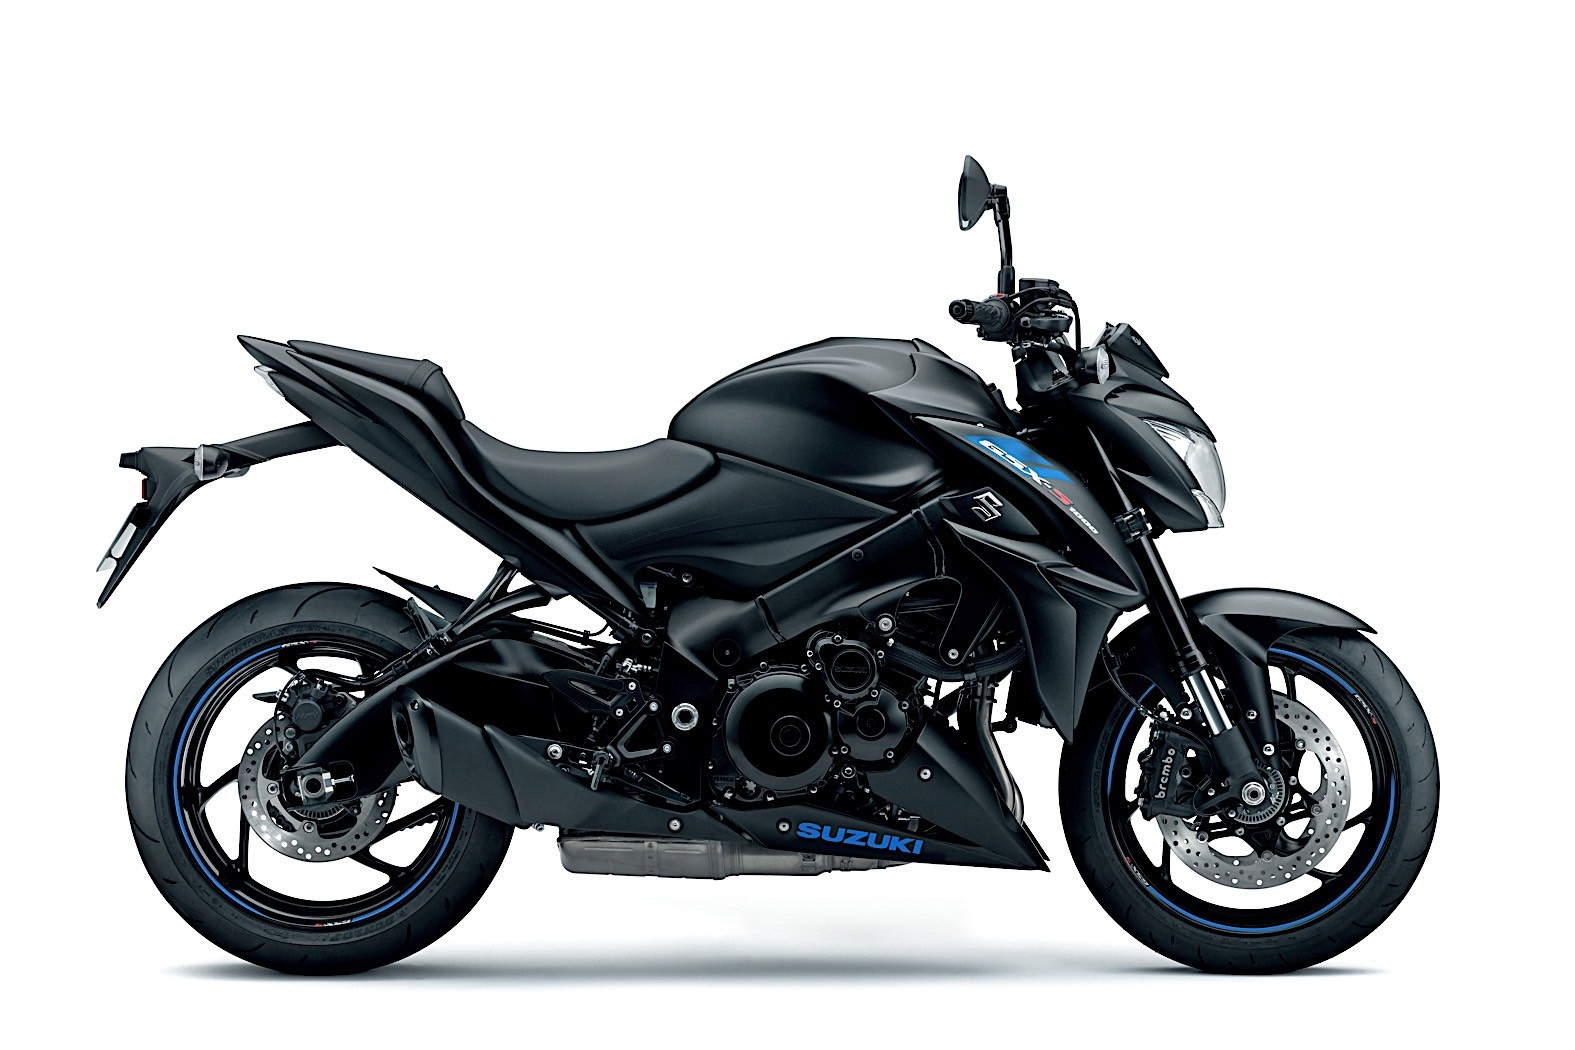 2019-suzuki-motorcycles-shine-in-new-colors-at-the-motorcycle-live-32